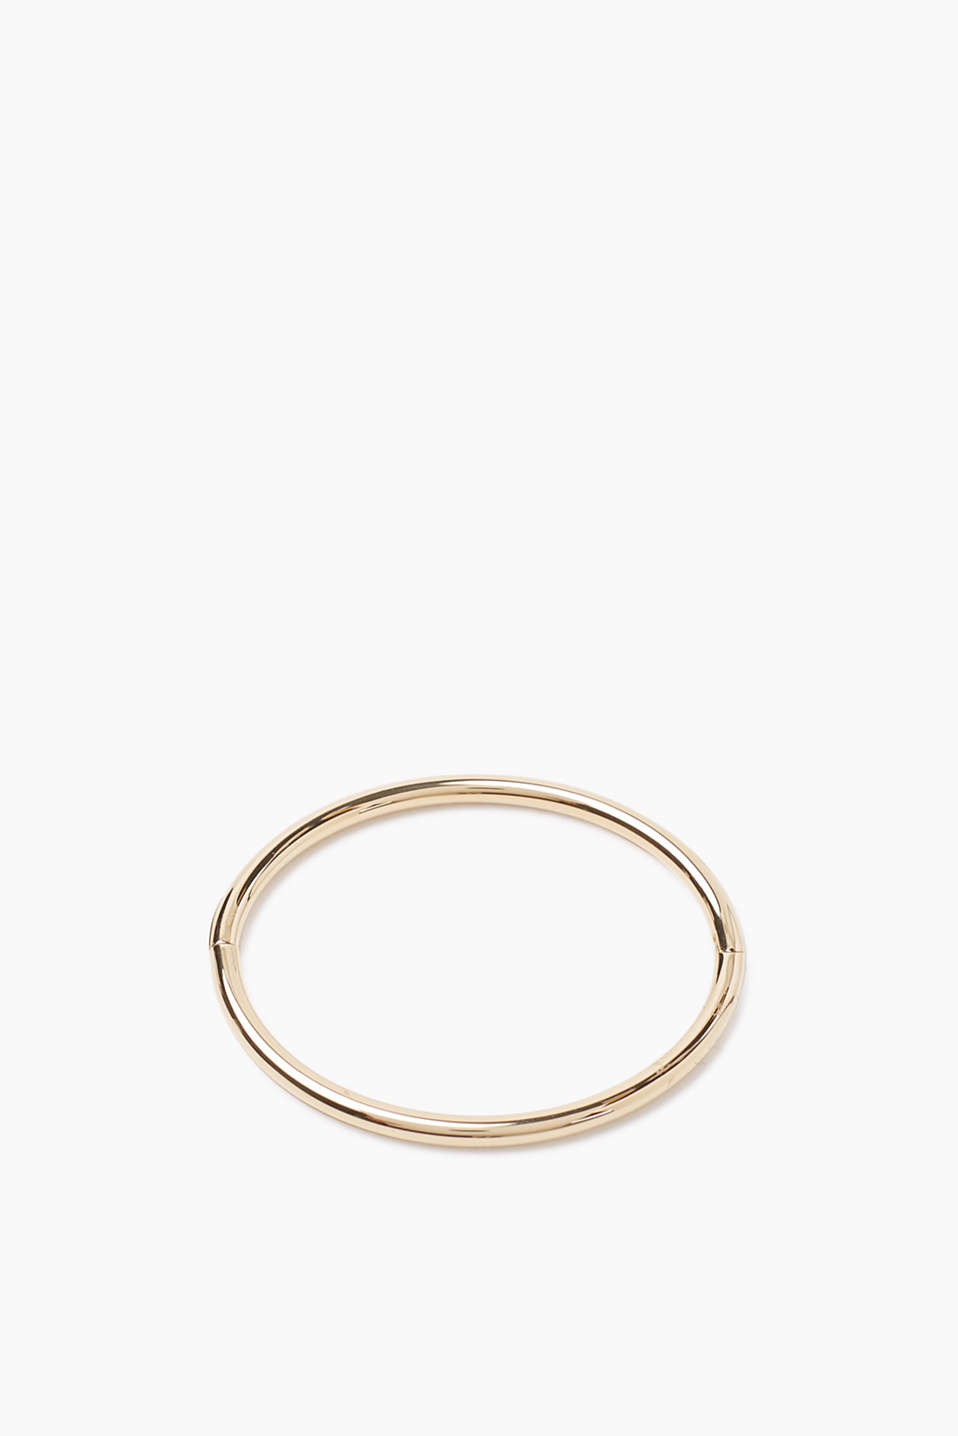 Bangle in a high-quality metal alloy with a hinge and a practical clip fastener